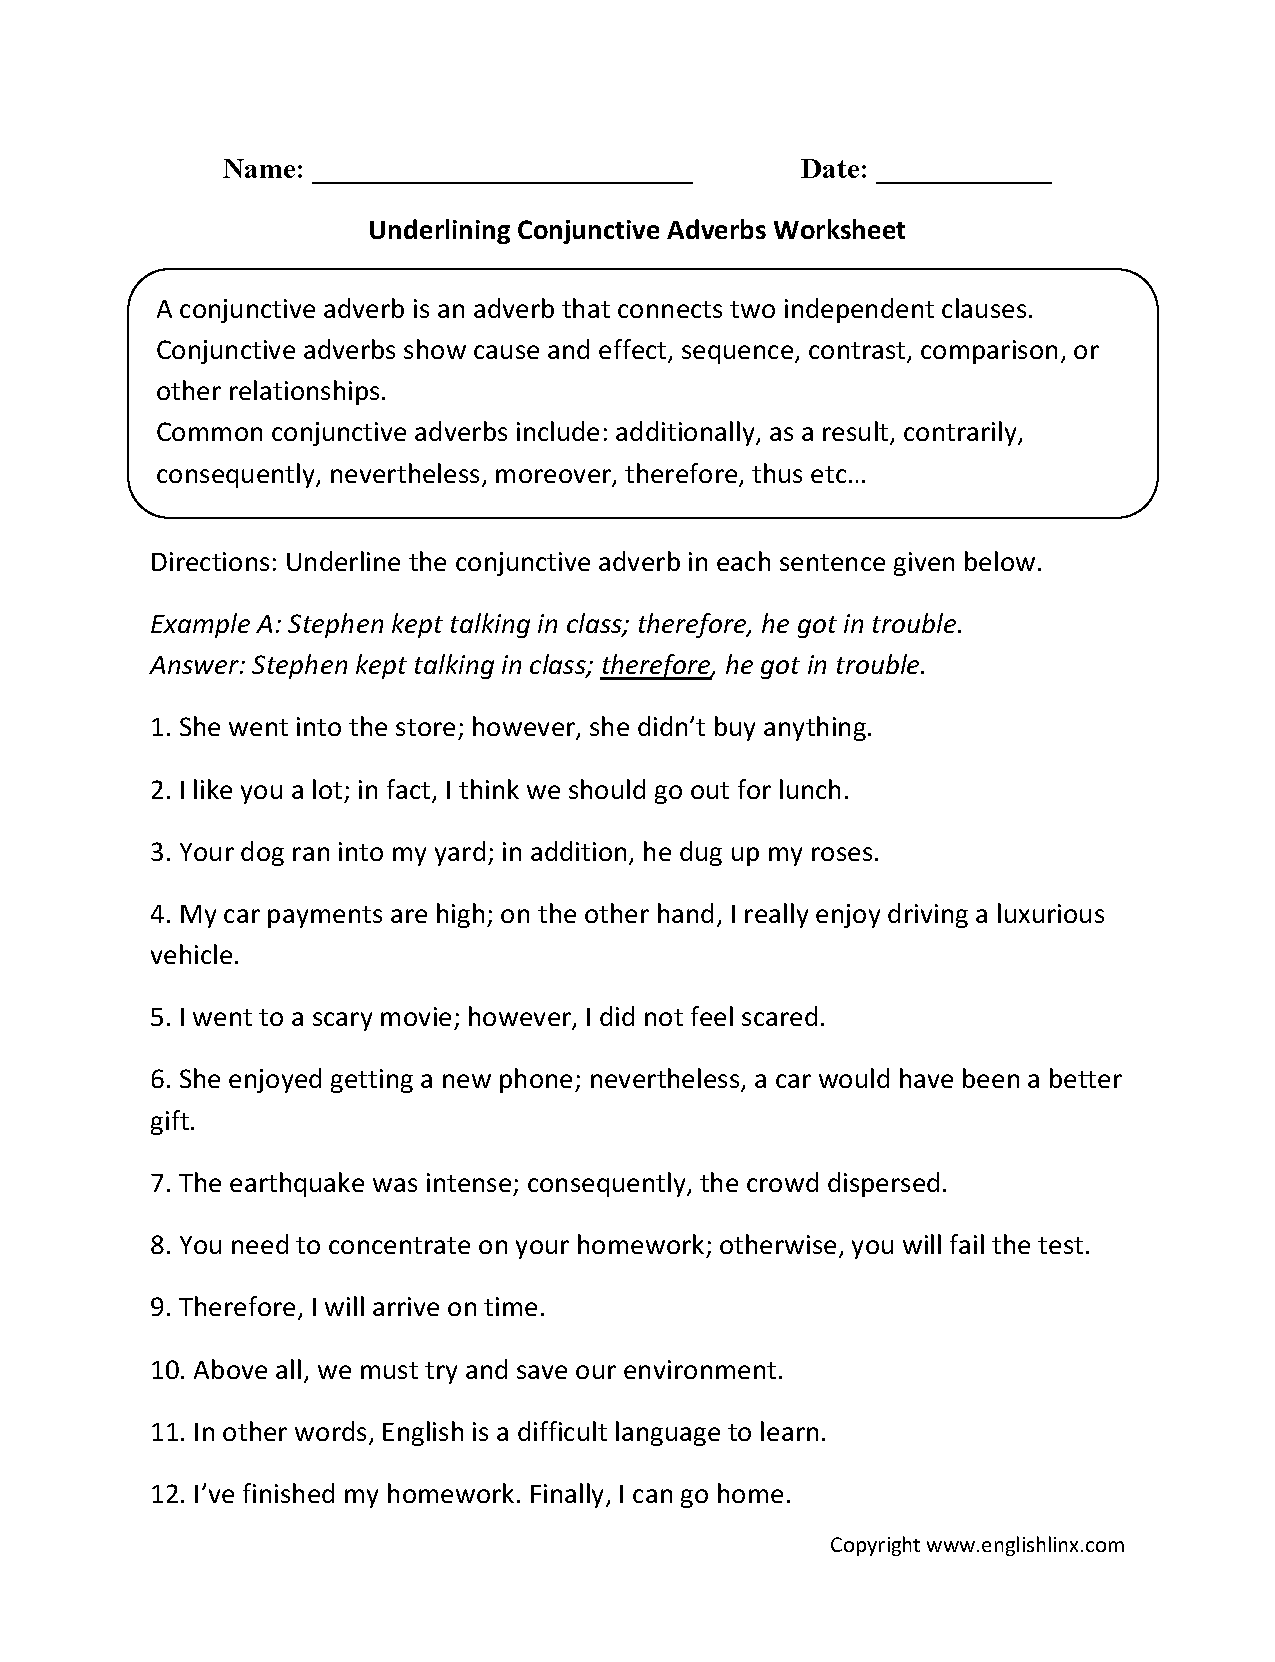 Weirdmailus  Pleasant Englishlinxcom  Conjunctions Worksheets With Inspiring Worksheet With Agreeable Math Worksheets Second Grade Also Telling The Time Ks Worksheets In Addition Mitochondria Worksheet And Coins Worksheet As Well As Context Clues Worksheets Th Grade Additionally Self Defeating Behaviors Worksheet From Englishlinxcom With Weirdmailus  Inspiring Englishlinxcom  Conjunctions Worksheets With Agreeable Worksheet And Pleasant Math Worksheets Second Grade Also Telling The Time Ks Worksheets In Addition Mitochondria Worksheet From Englishlinxcom